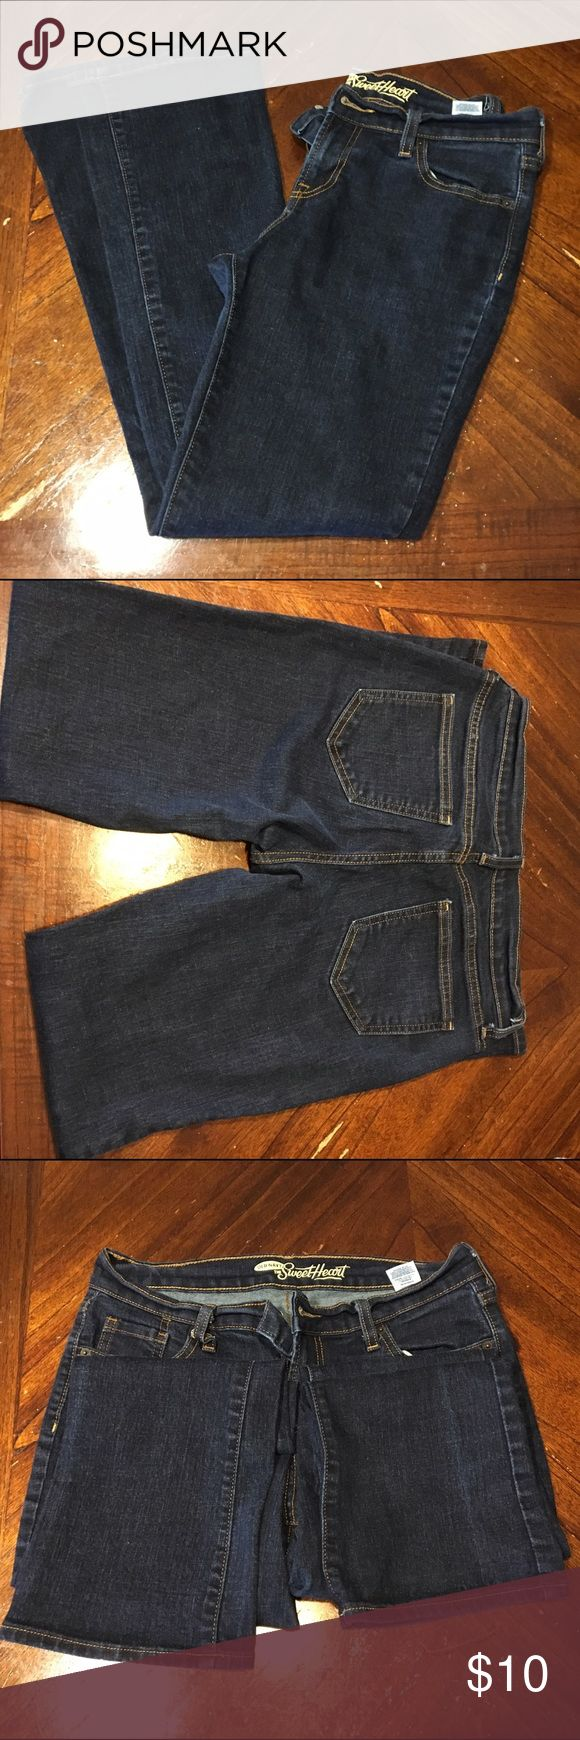 Old Navy The Sweetheart jeans Like new, worn once, hems are intact. 8 inches from button to crotch, inseam 28.5 inches, boot cut Old Navy Jeans Boot Cut